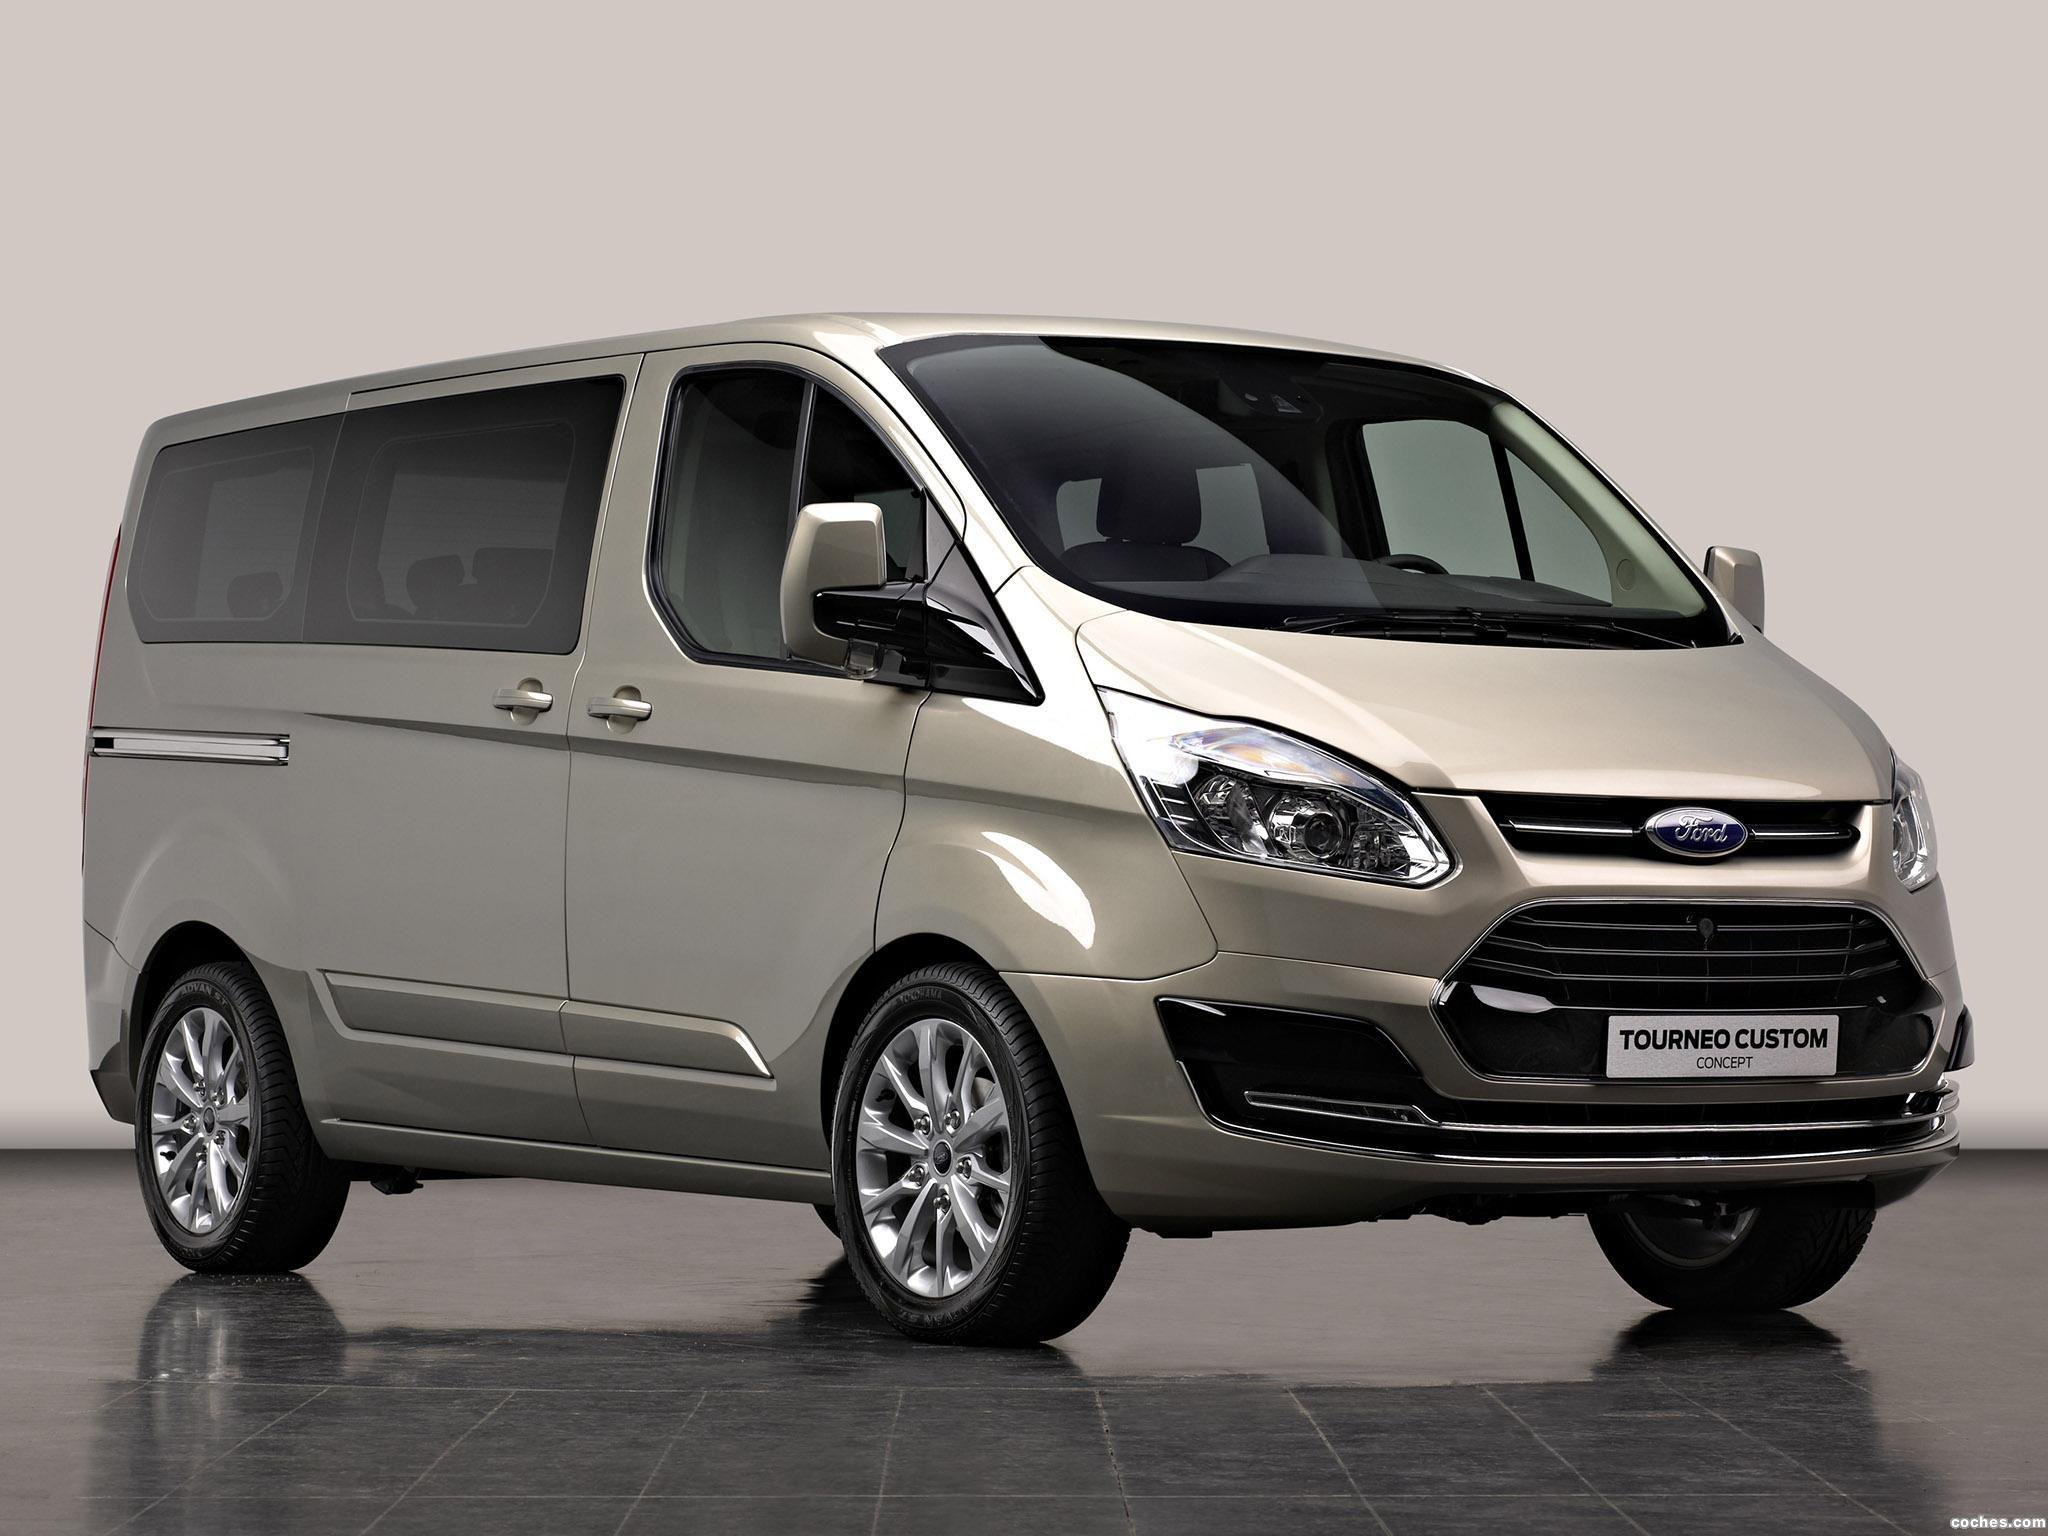 Foto 0 de Ford Tourneo Custom Concept 2012